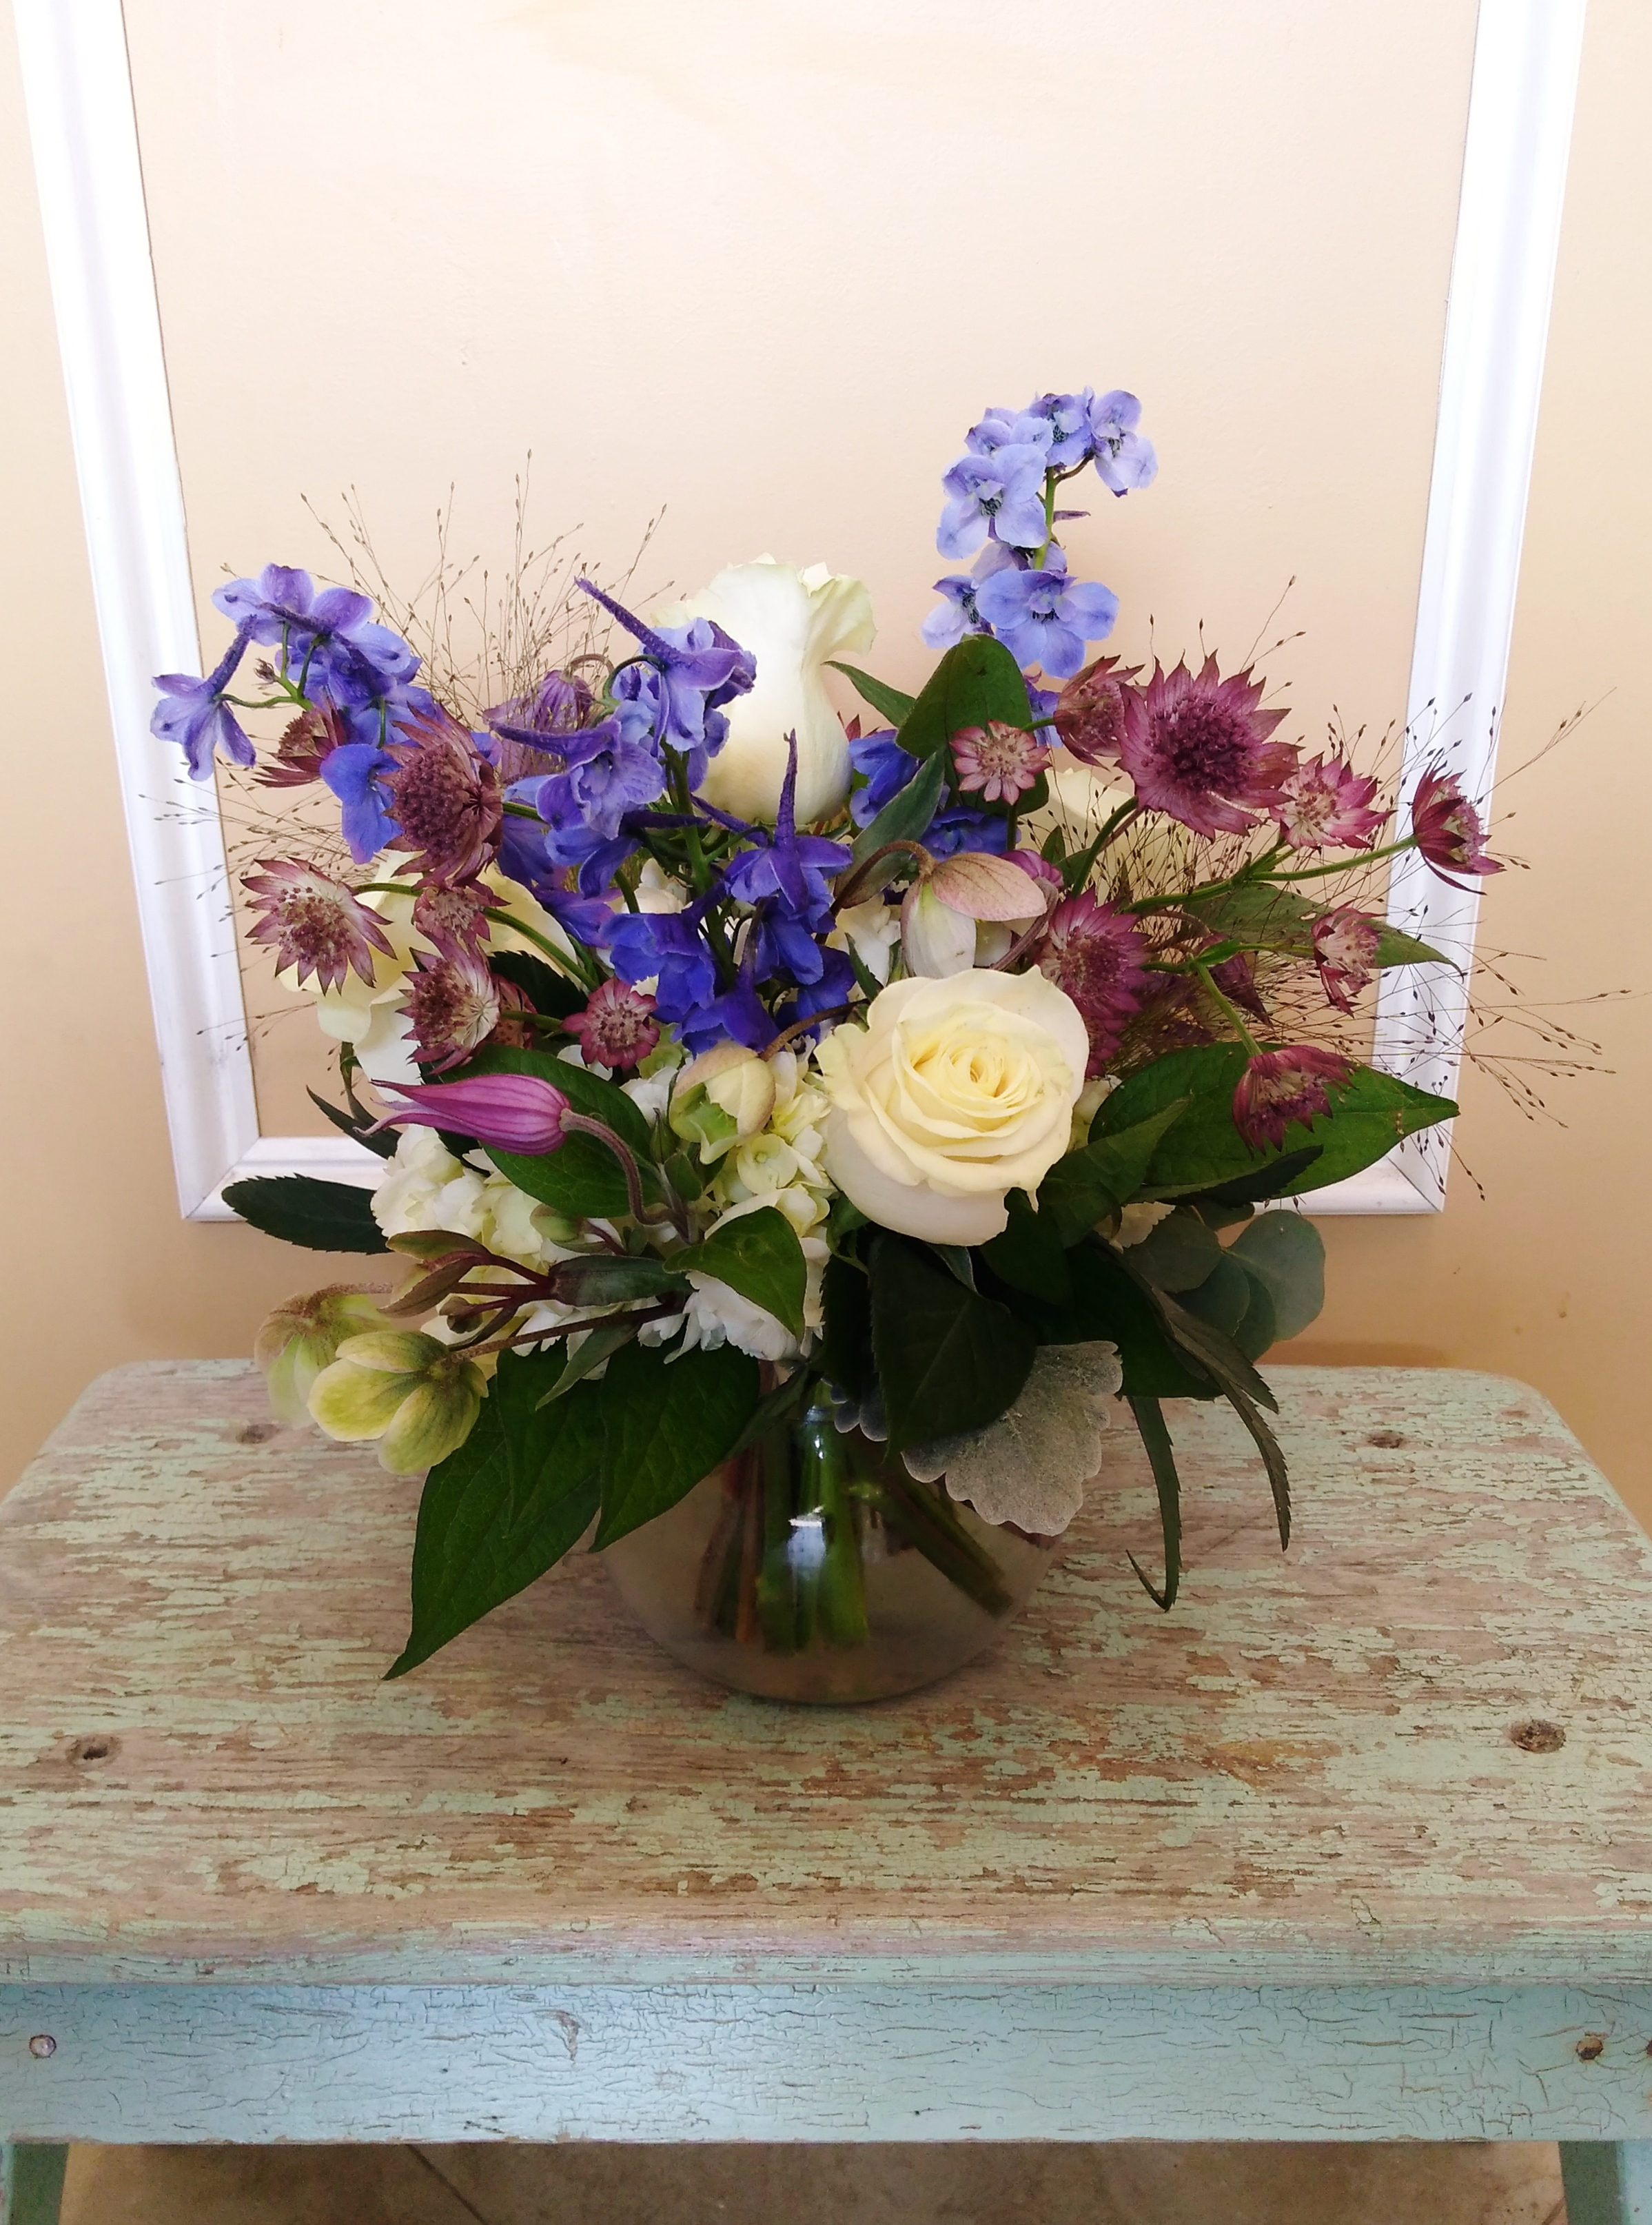 A4 $65-$85 Cluster-style arrangement. $65 as shown.